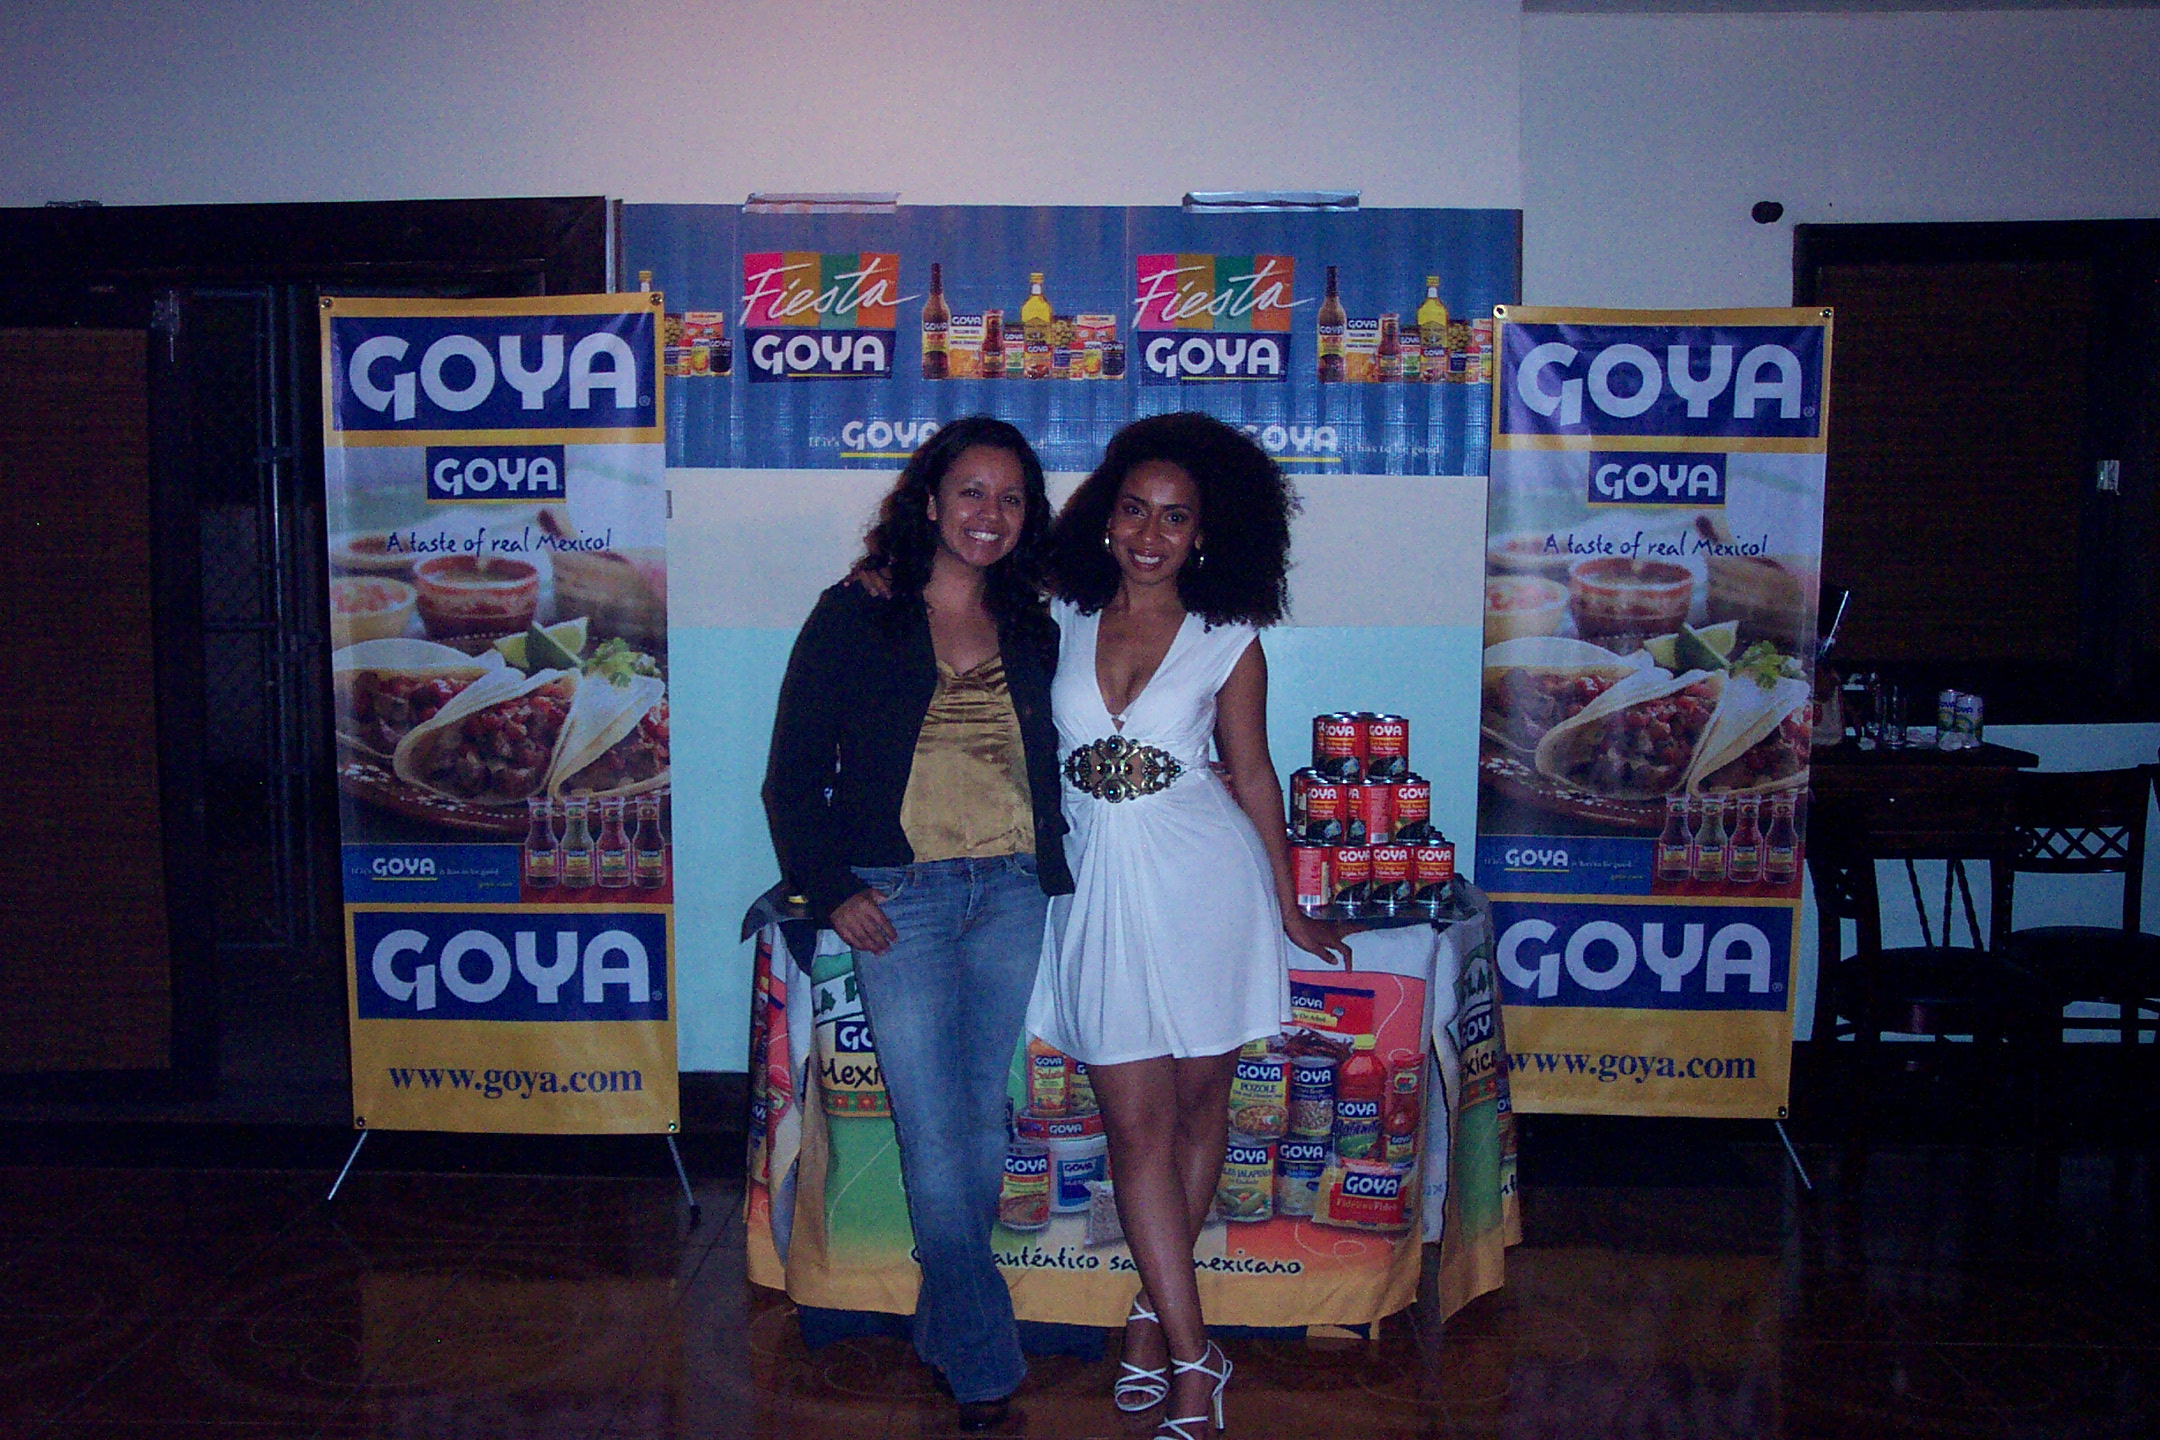 Goya - After Party Sponsors